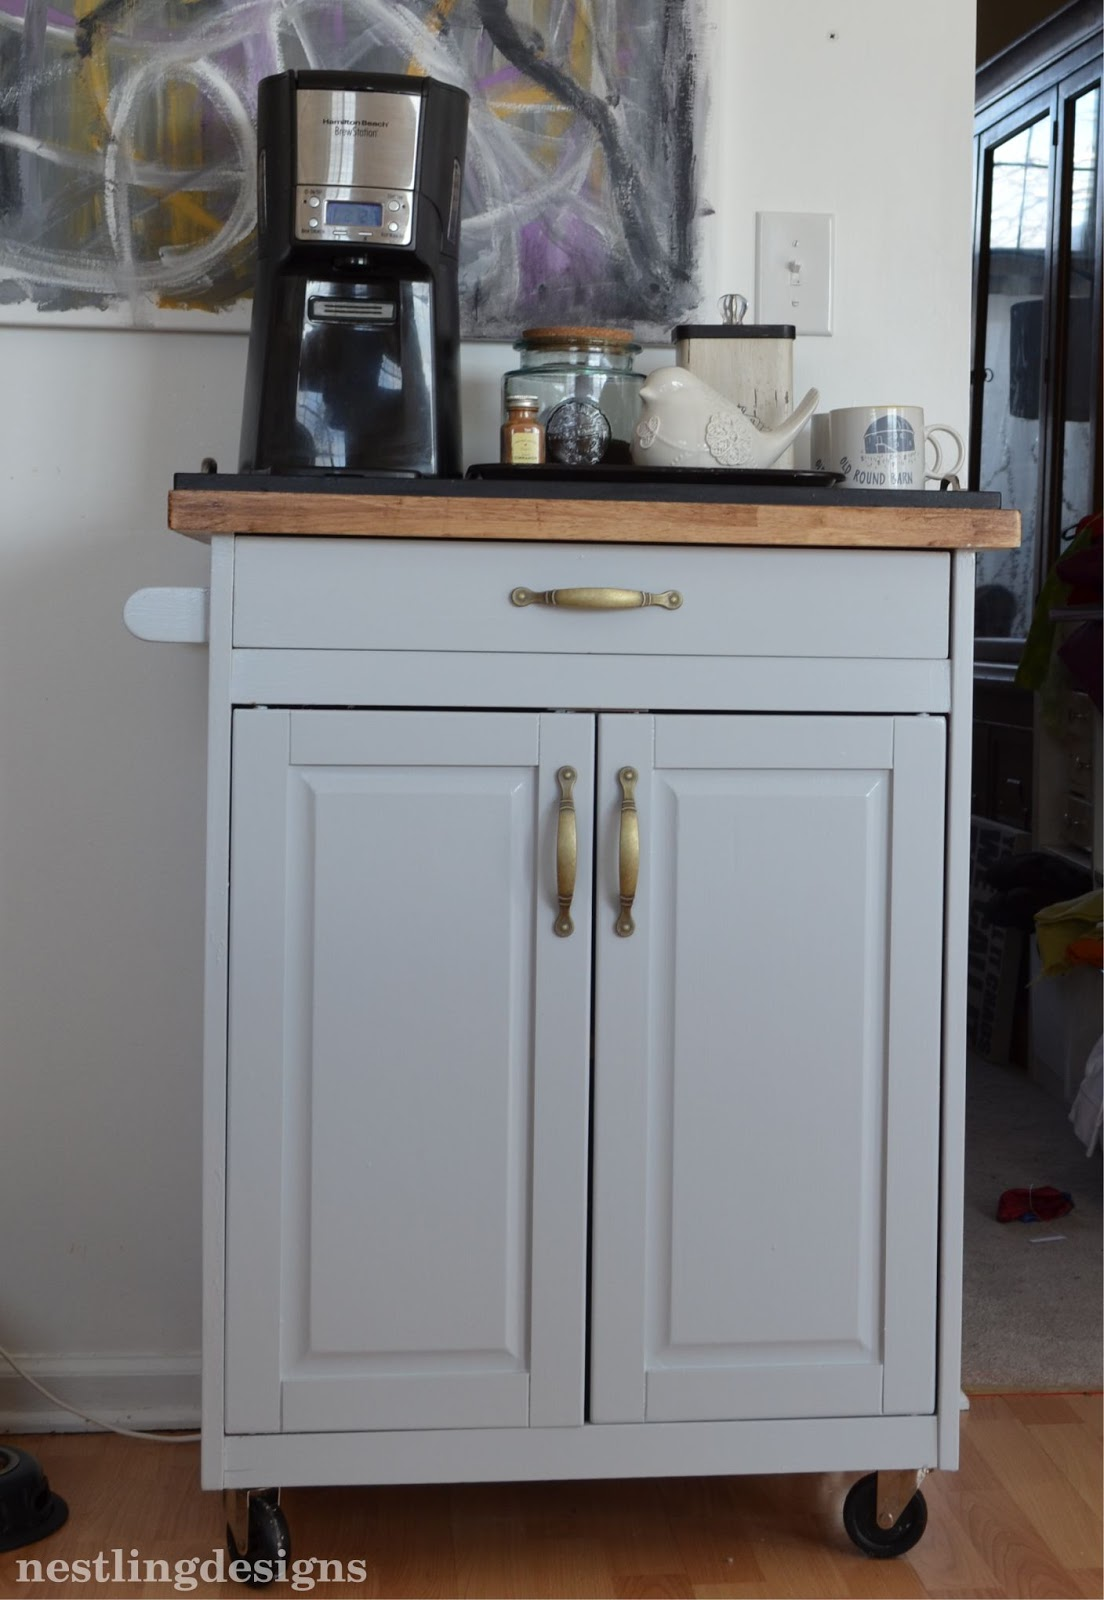 Nestling: One Room at a Time :: Kitchen Cart turned Coffee ...